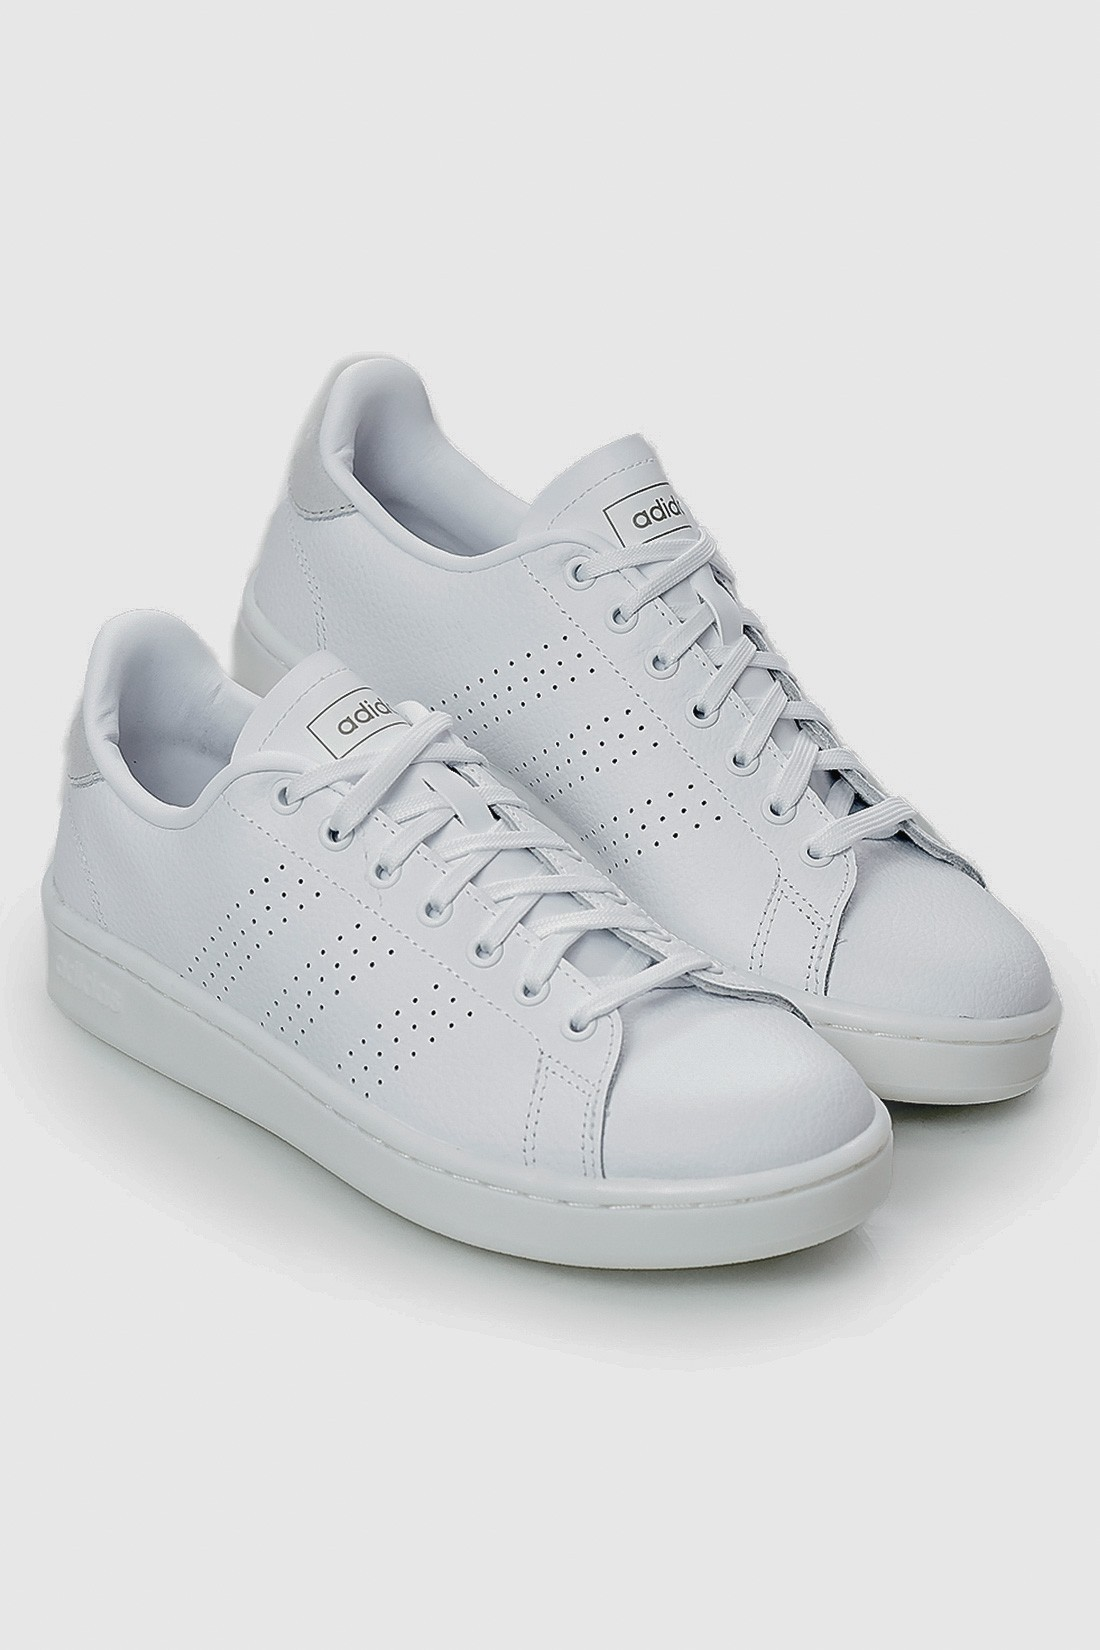 Tenis Casual Adidas Advantage